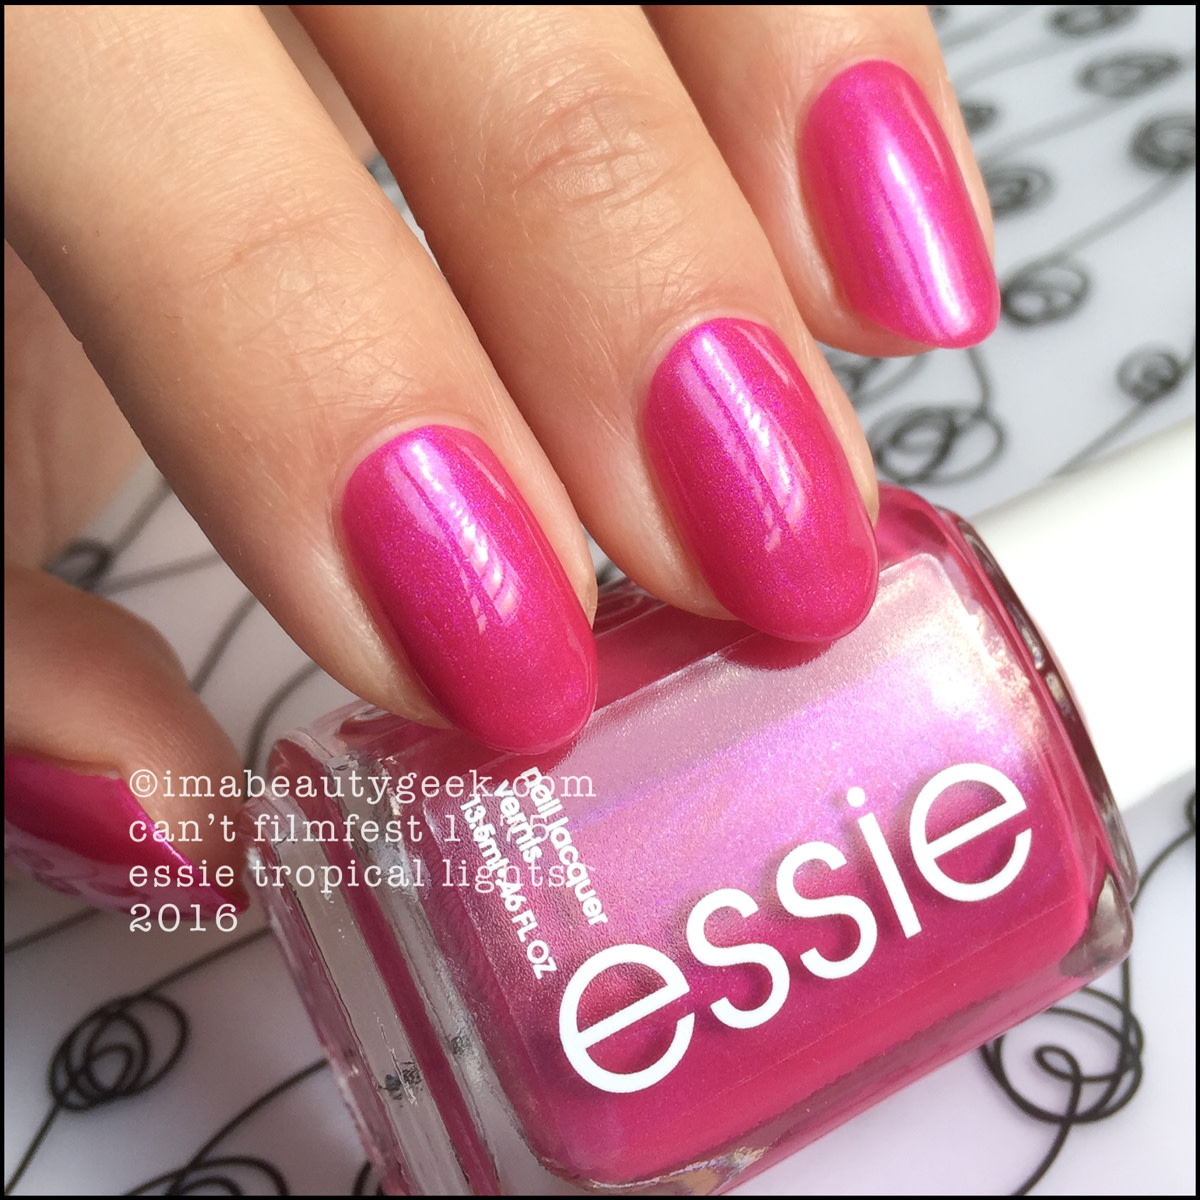 Essie Cant Filmfest 1175_Essie Tropical Lights 2016 Collection